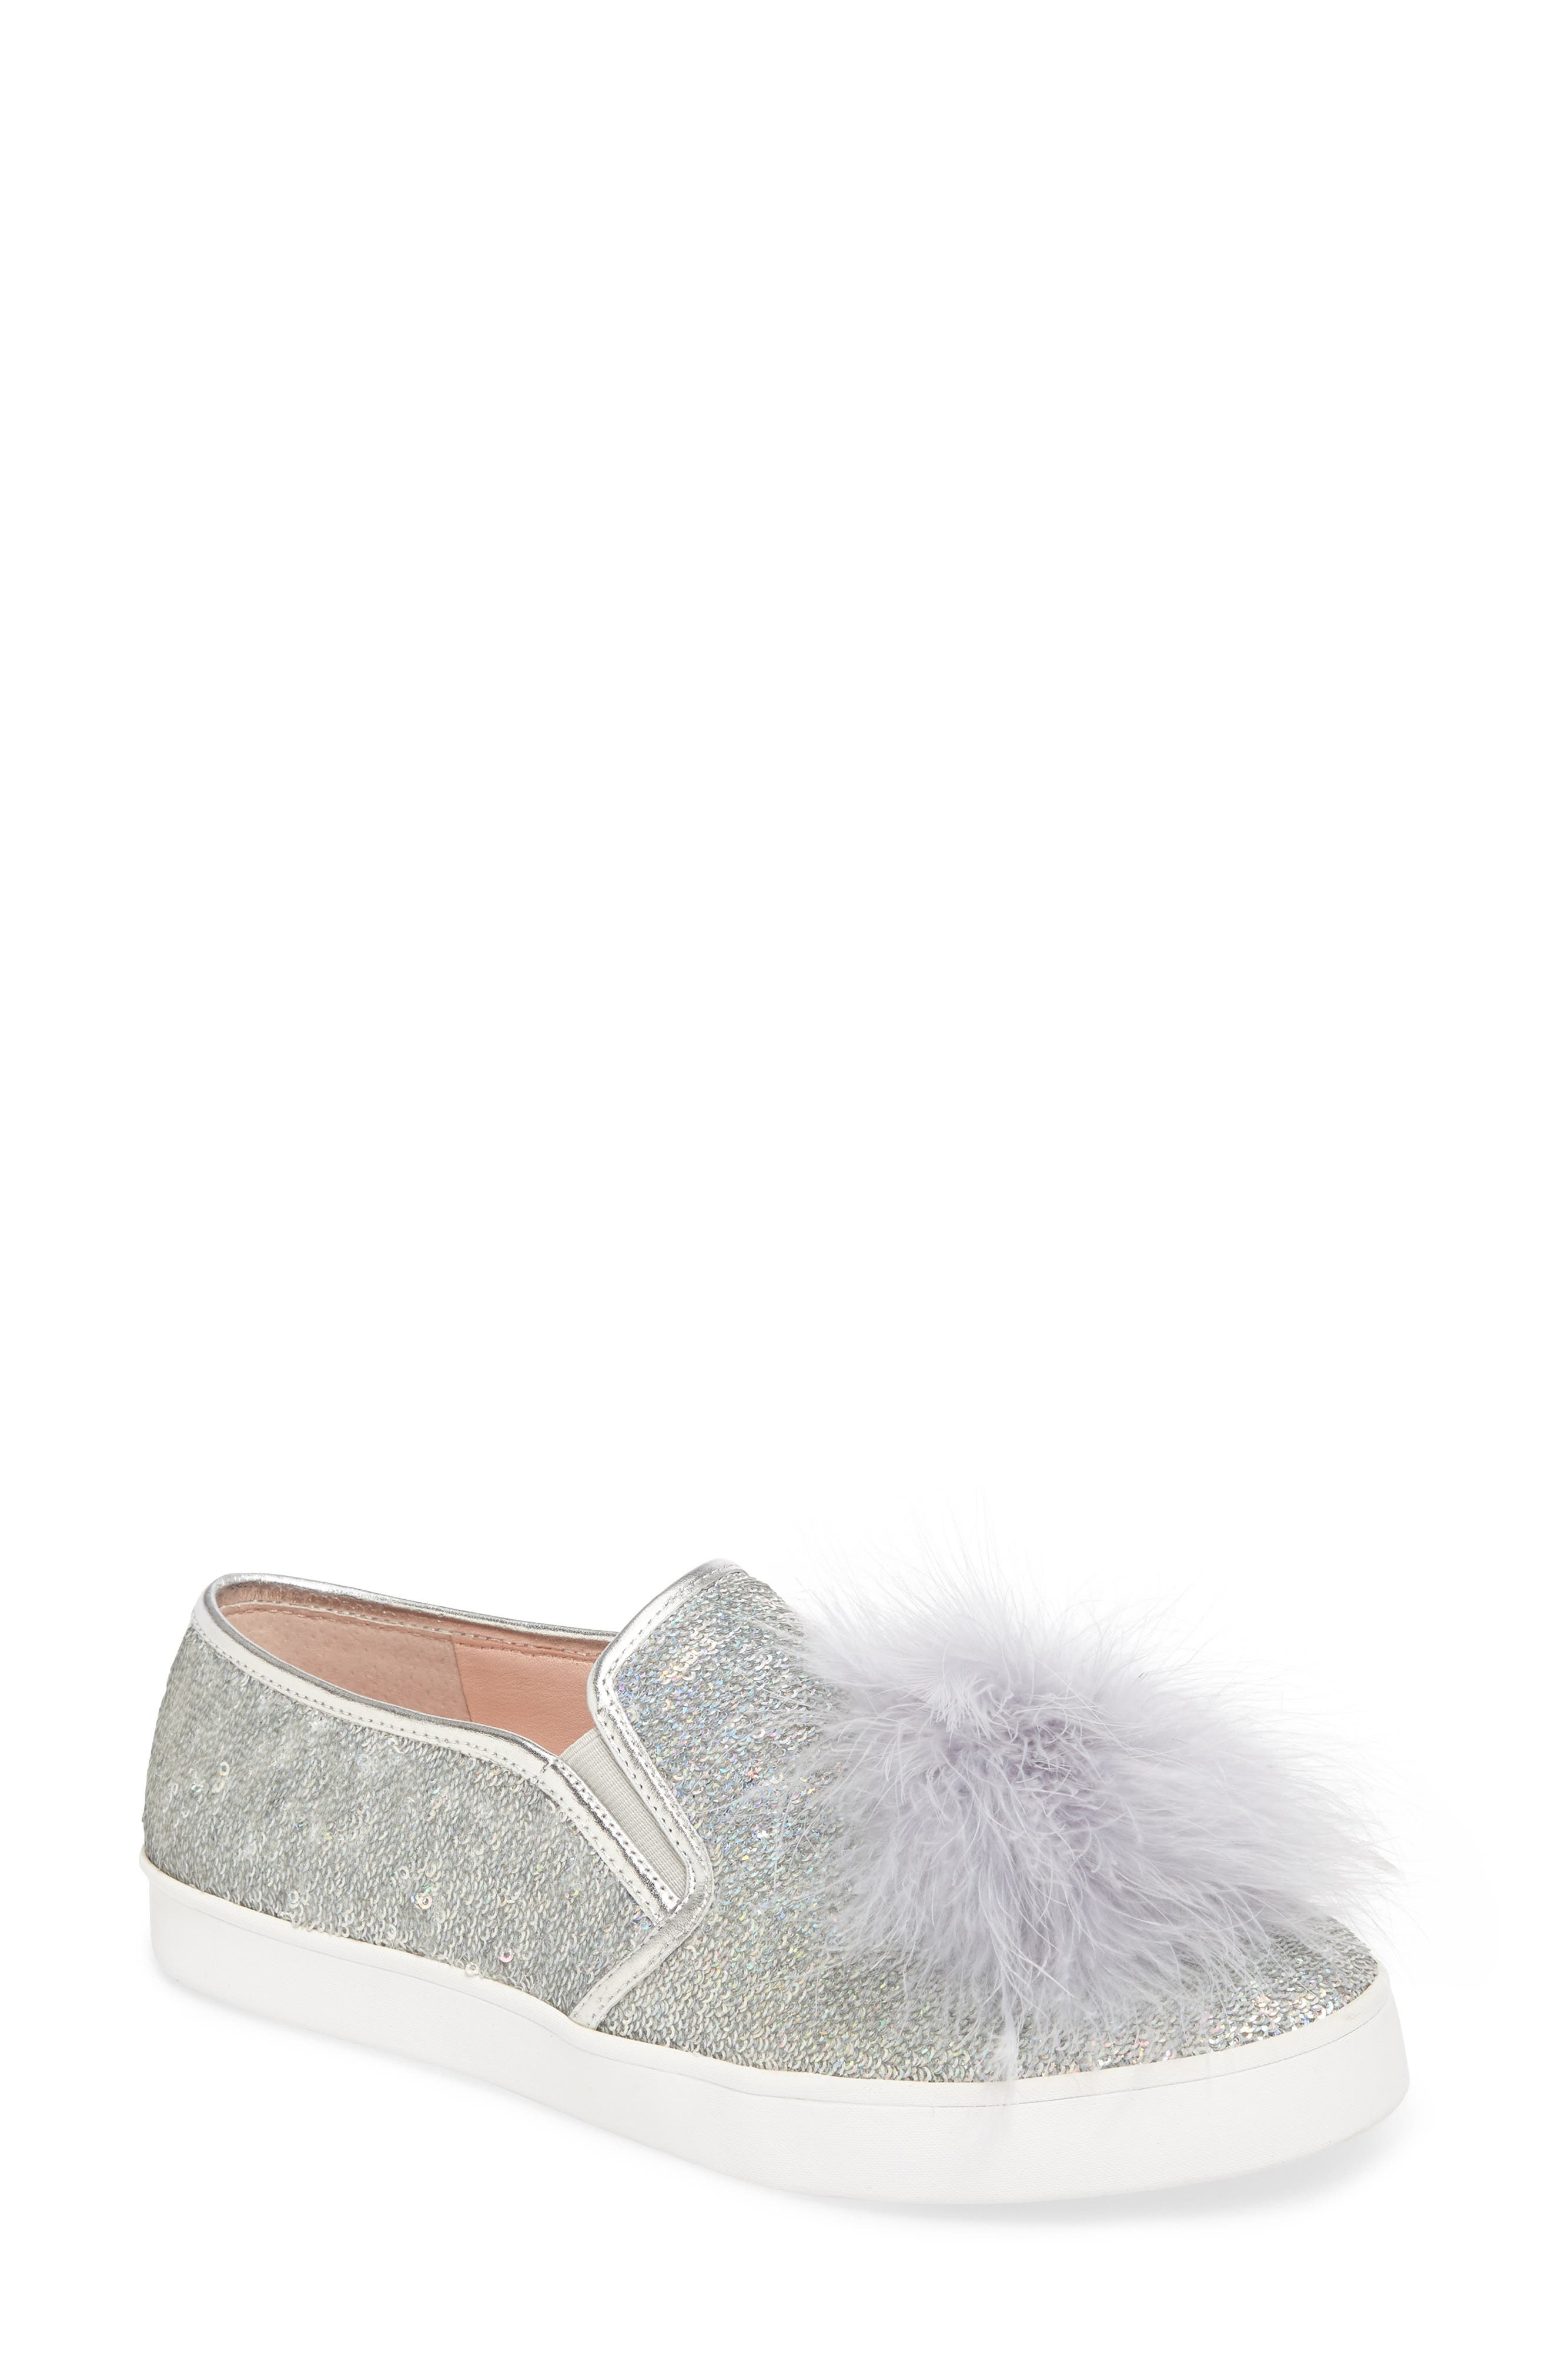 sequin slip-on sneaker,                             Main thumbnail 1, color,                             Silver Sequins